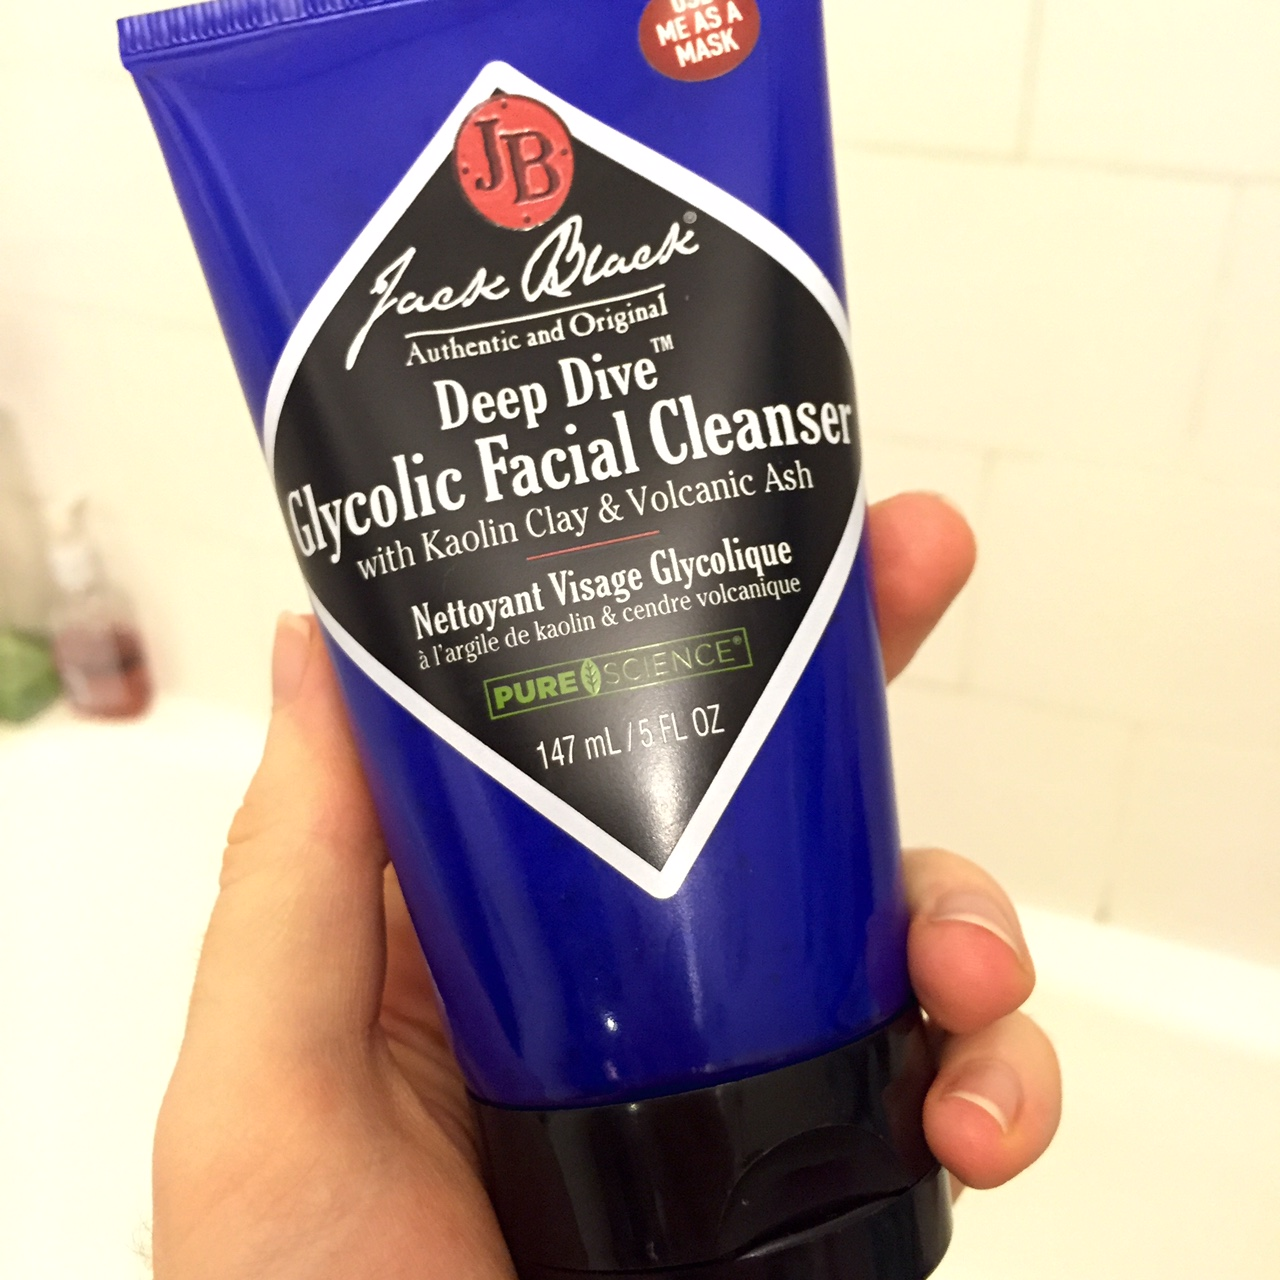 Deep Dive Glycolic Facial Cleanser by Jack Black #3